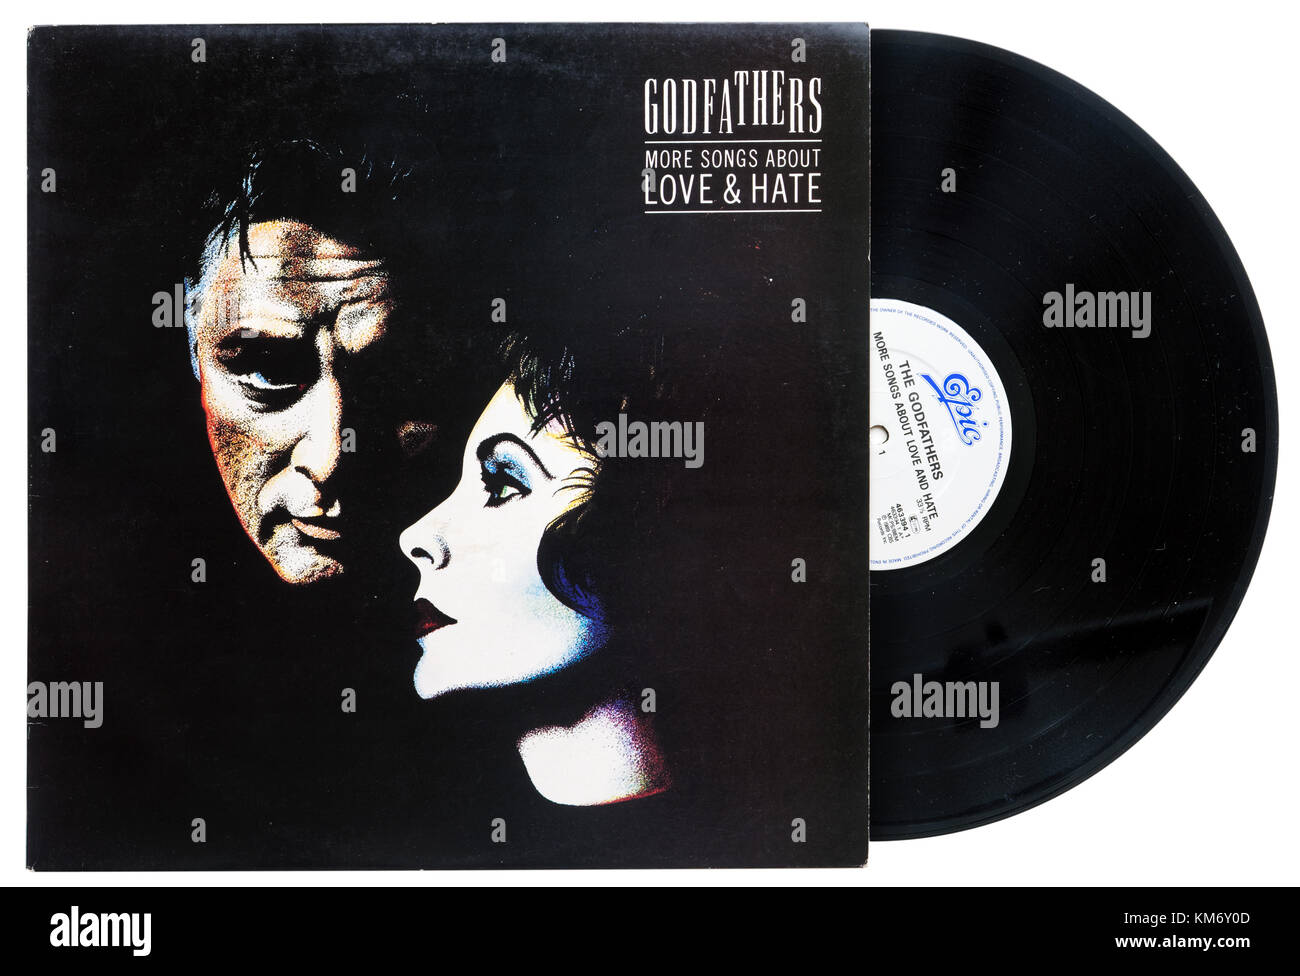 Godfathers More Songs a ABout Love and hate album - Stock Image